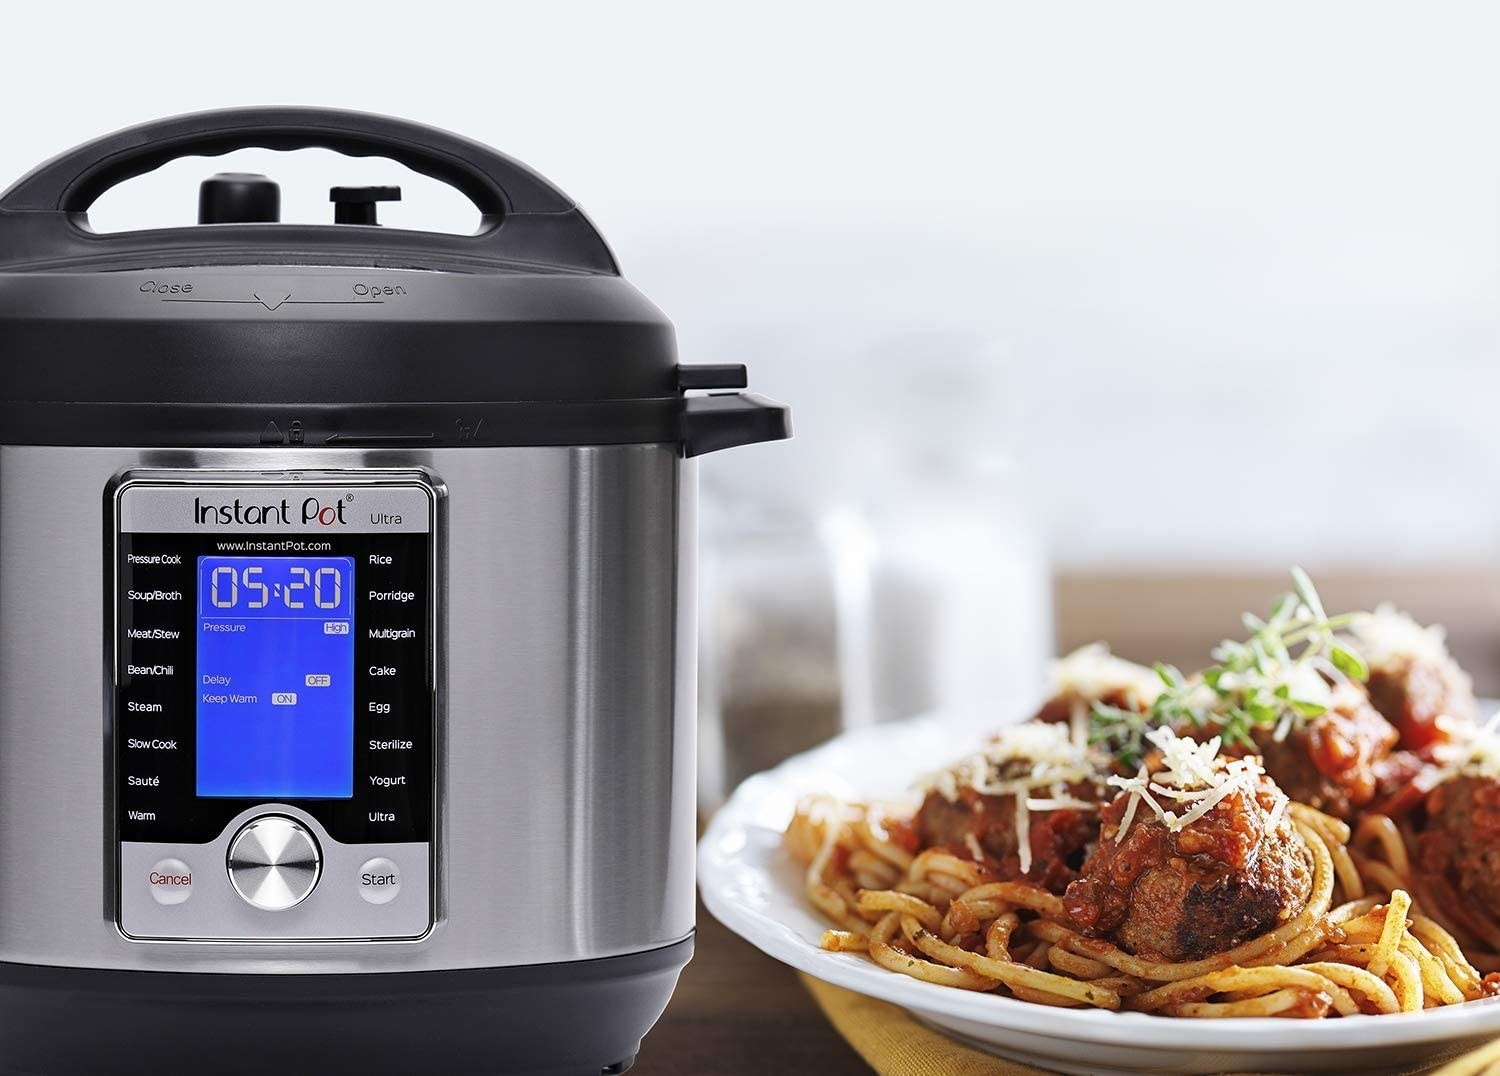 An Instant Pot next to a bowl of spaghetti and meatballs